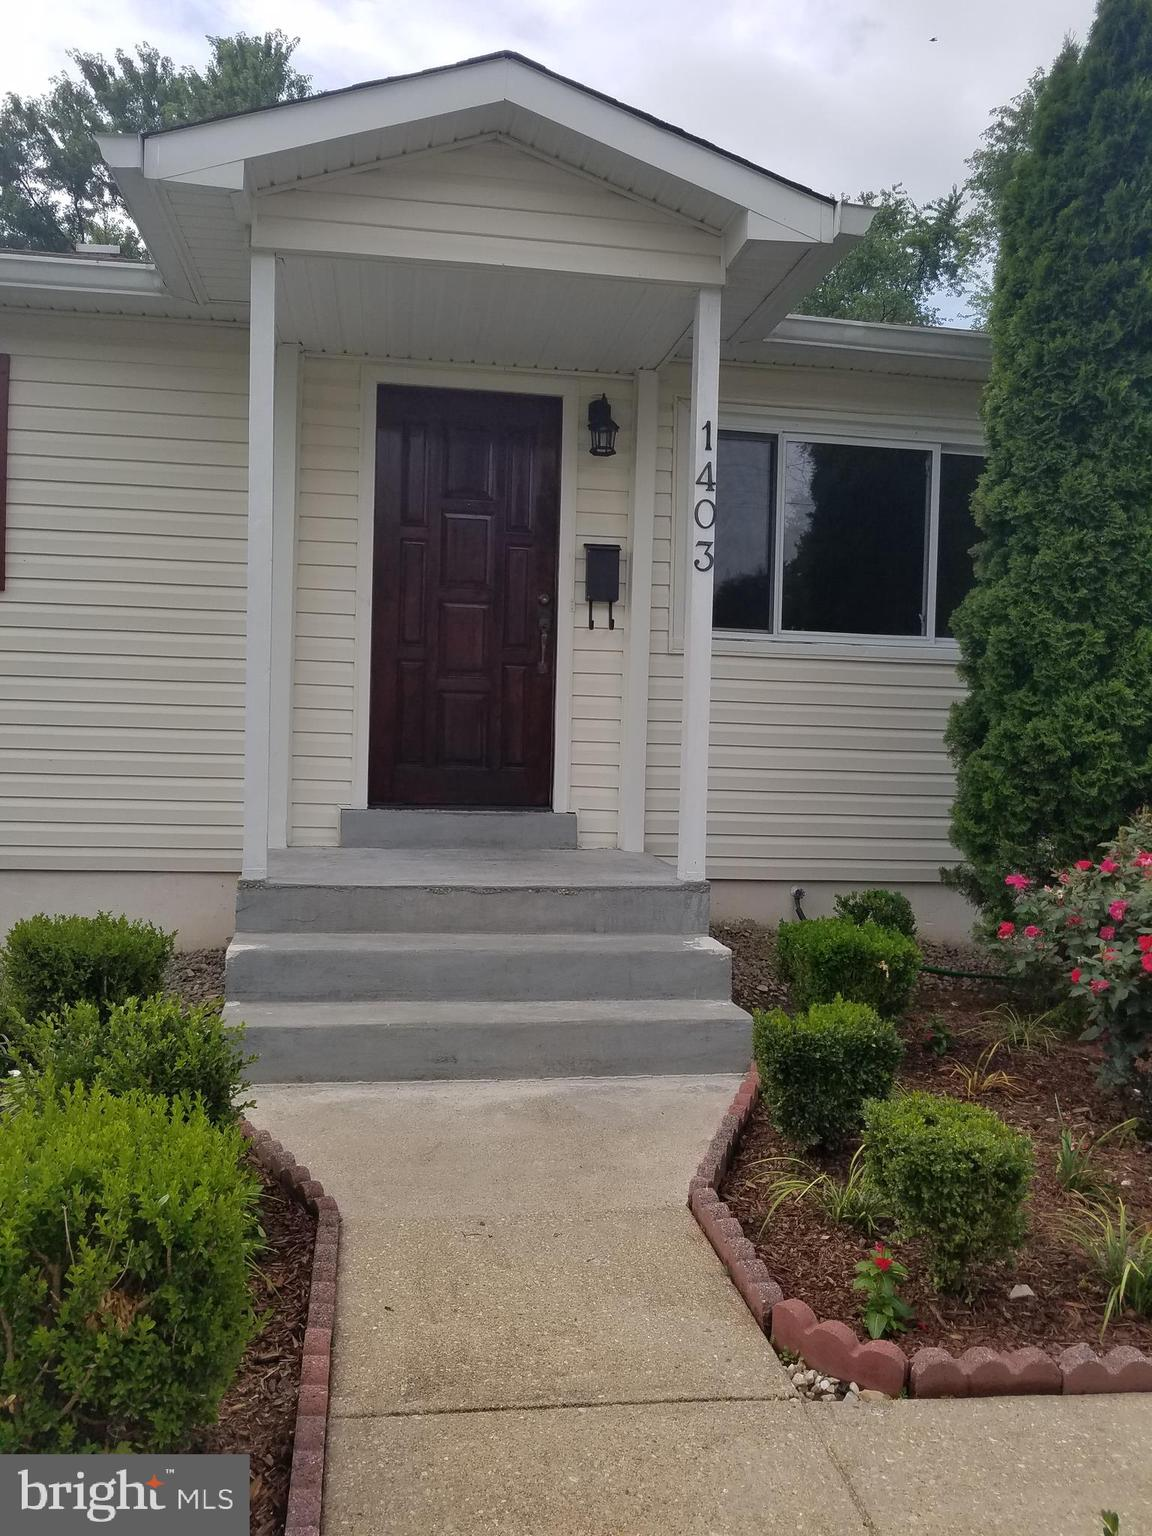 move in ready single family home. Updated kitchen with granite countertops, new stove, hood, dish wa